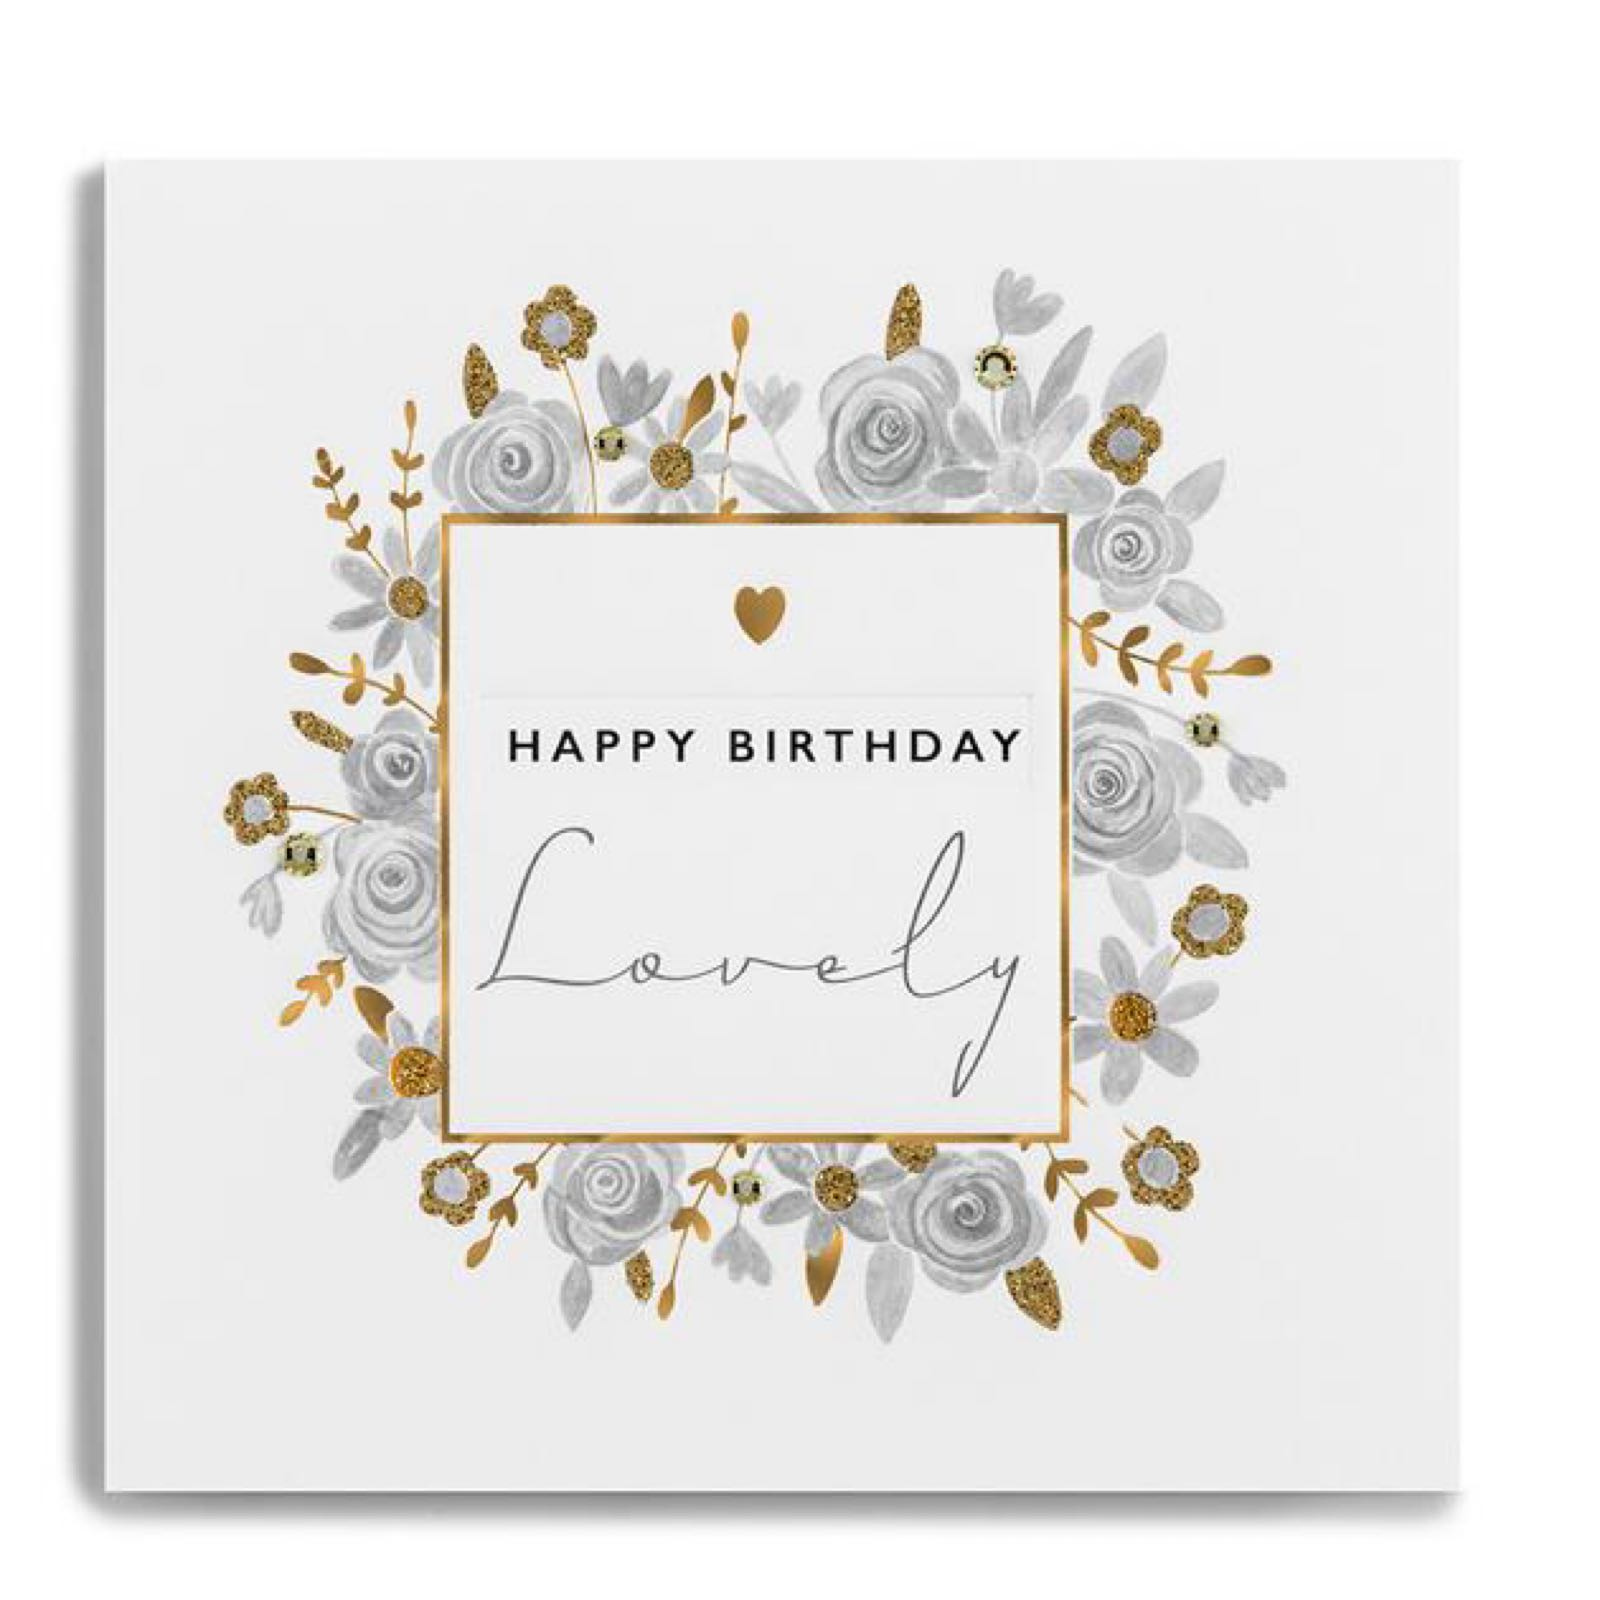 Janie wilson happy birthday lovely card